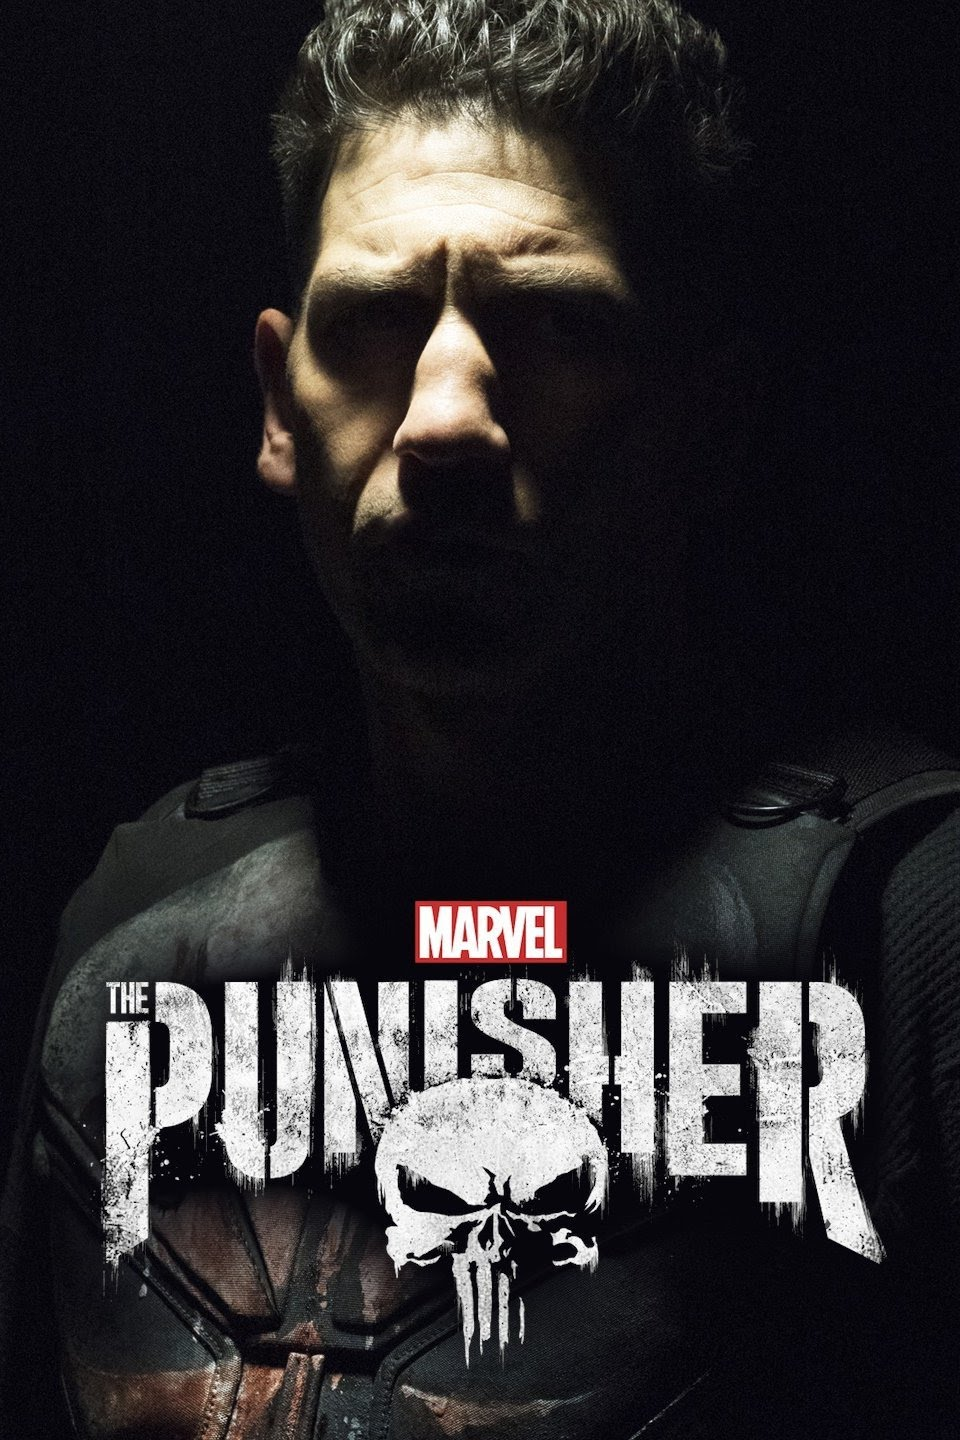 The Punisher S01 E01 Cut